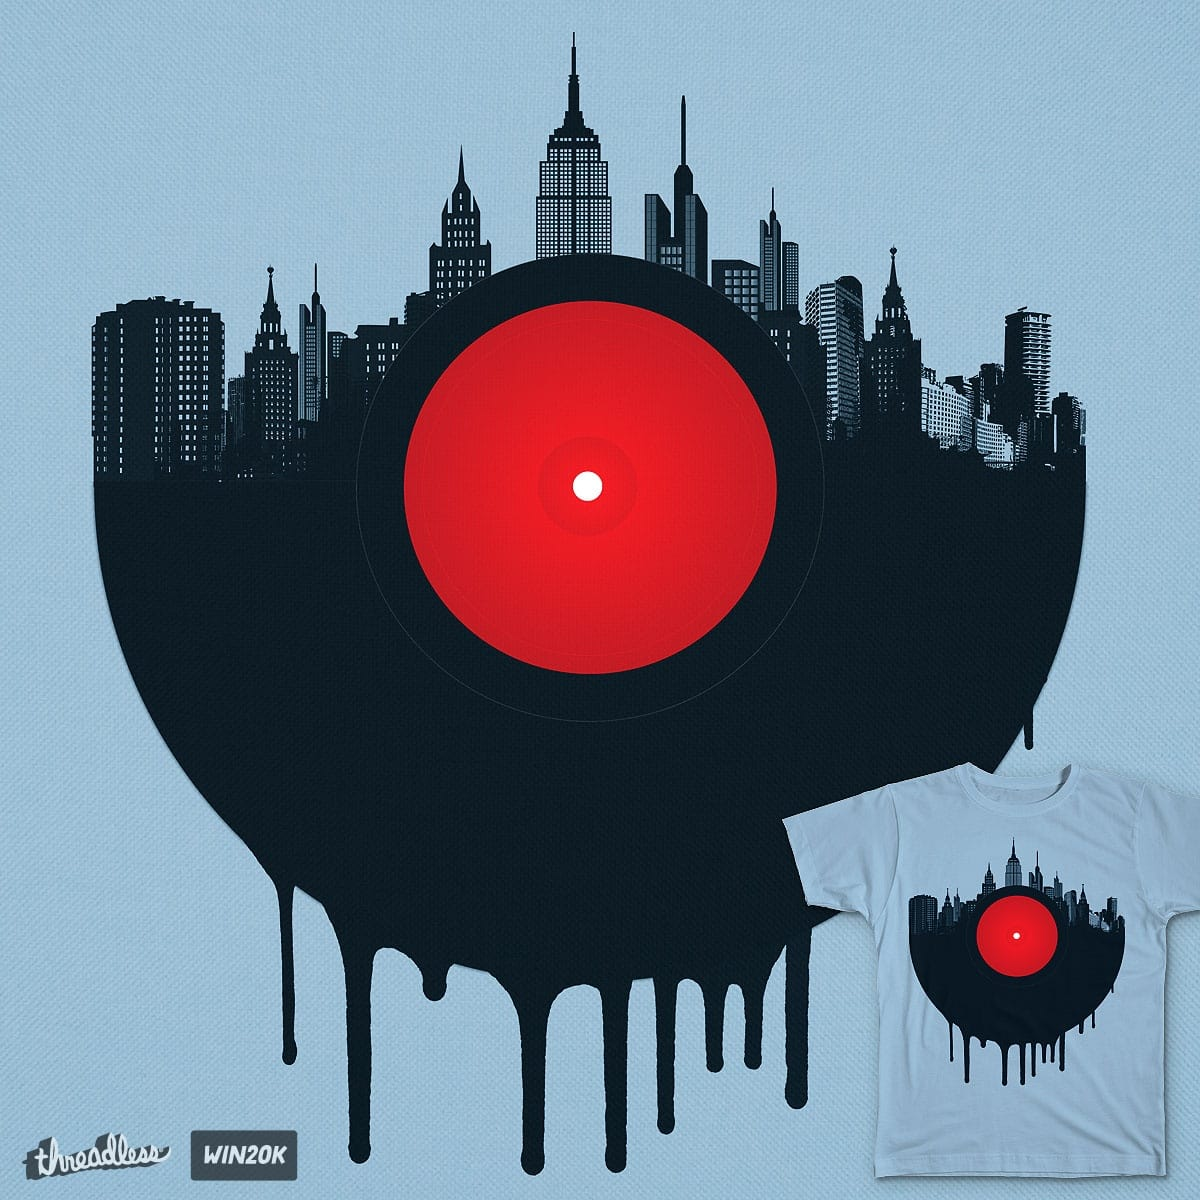 Vinyl City by Agimat ni Ingkong on Threadless